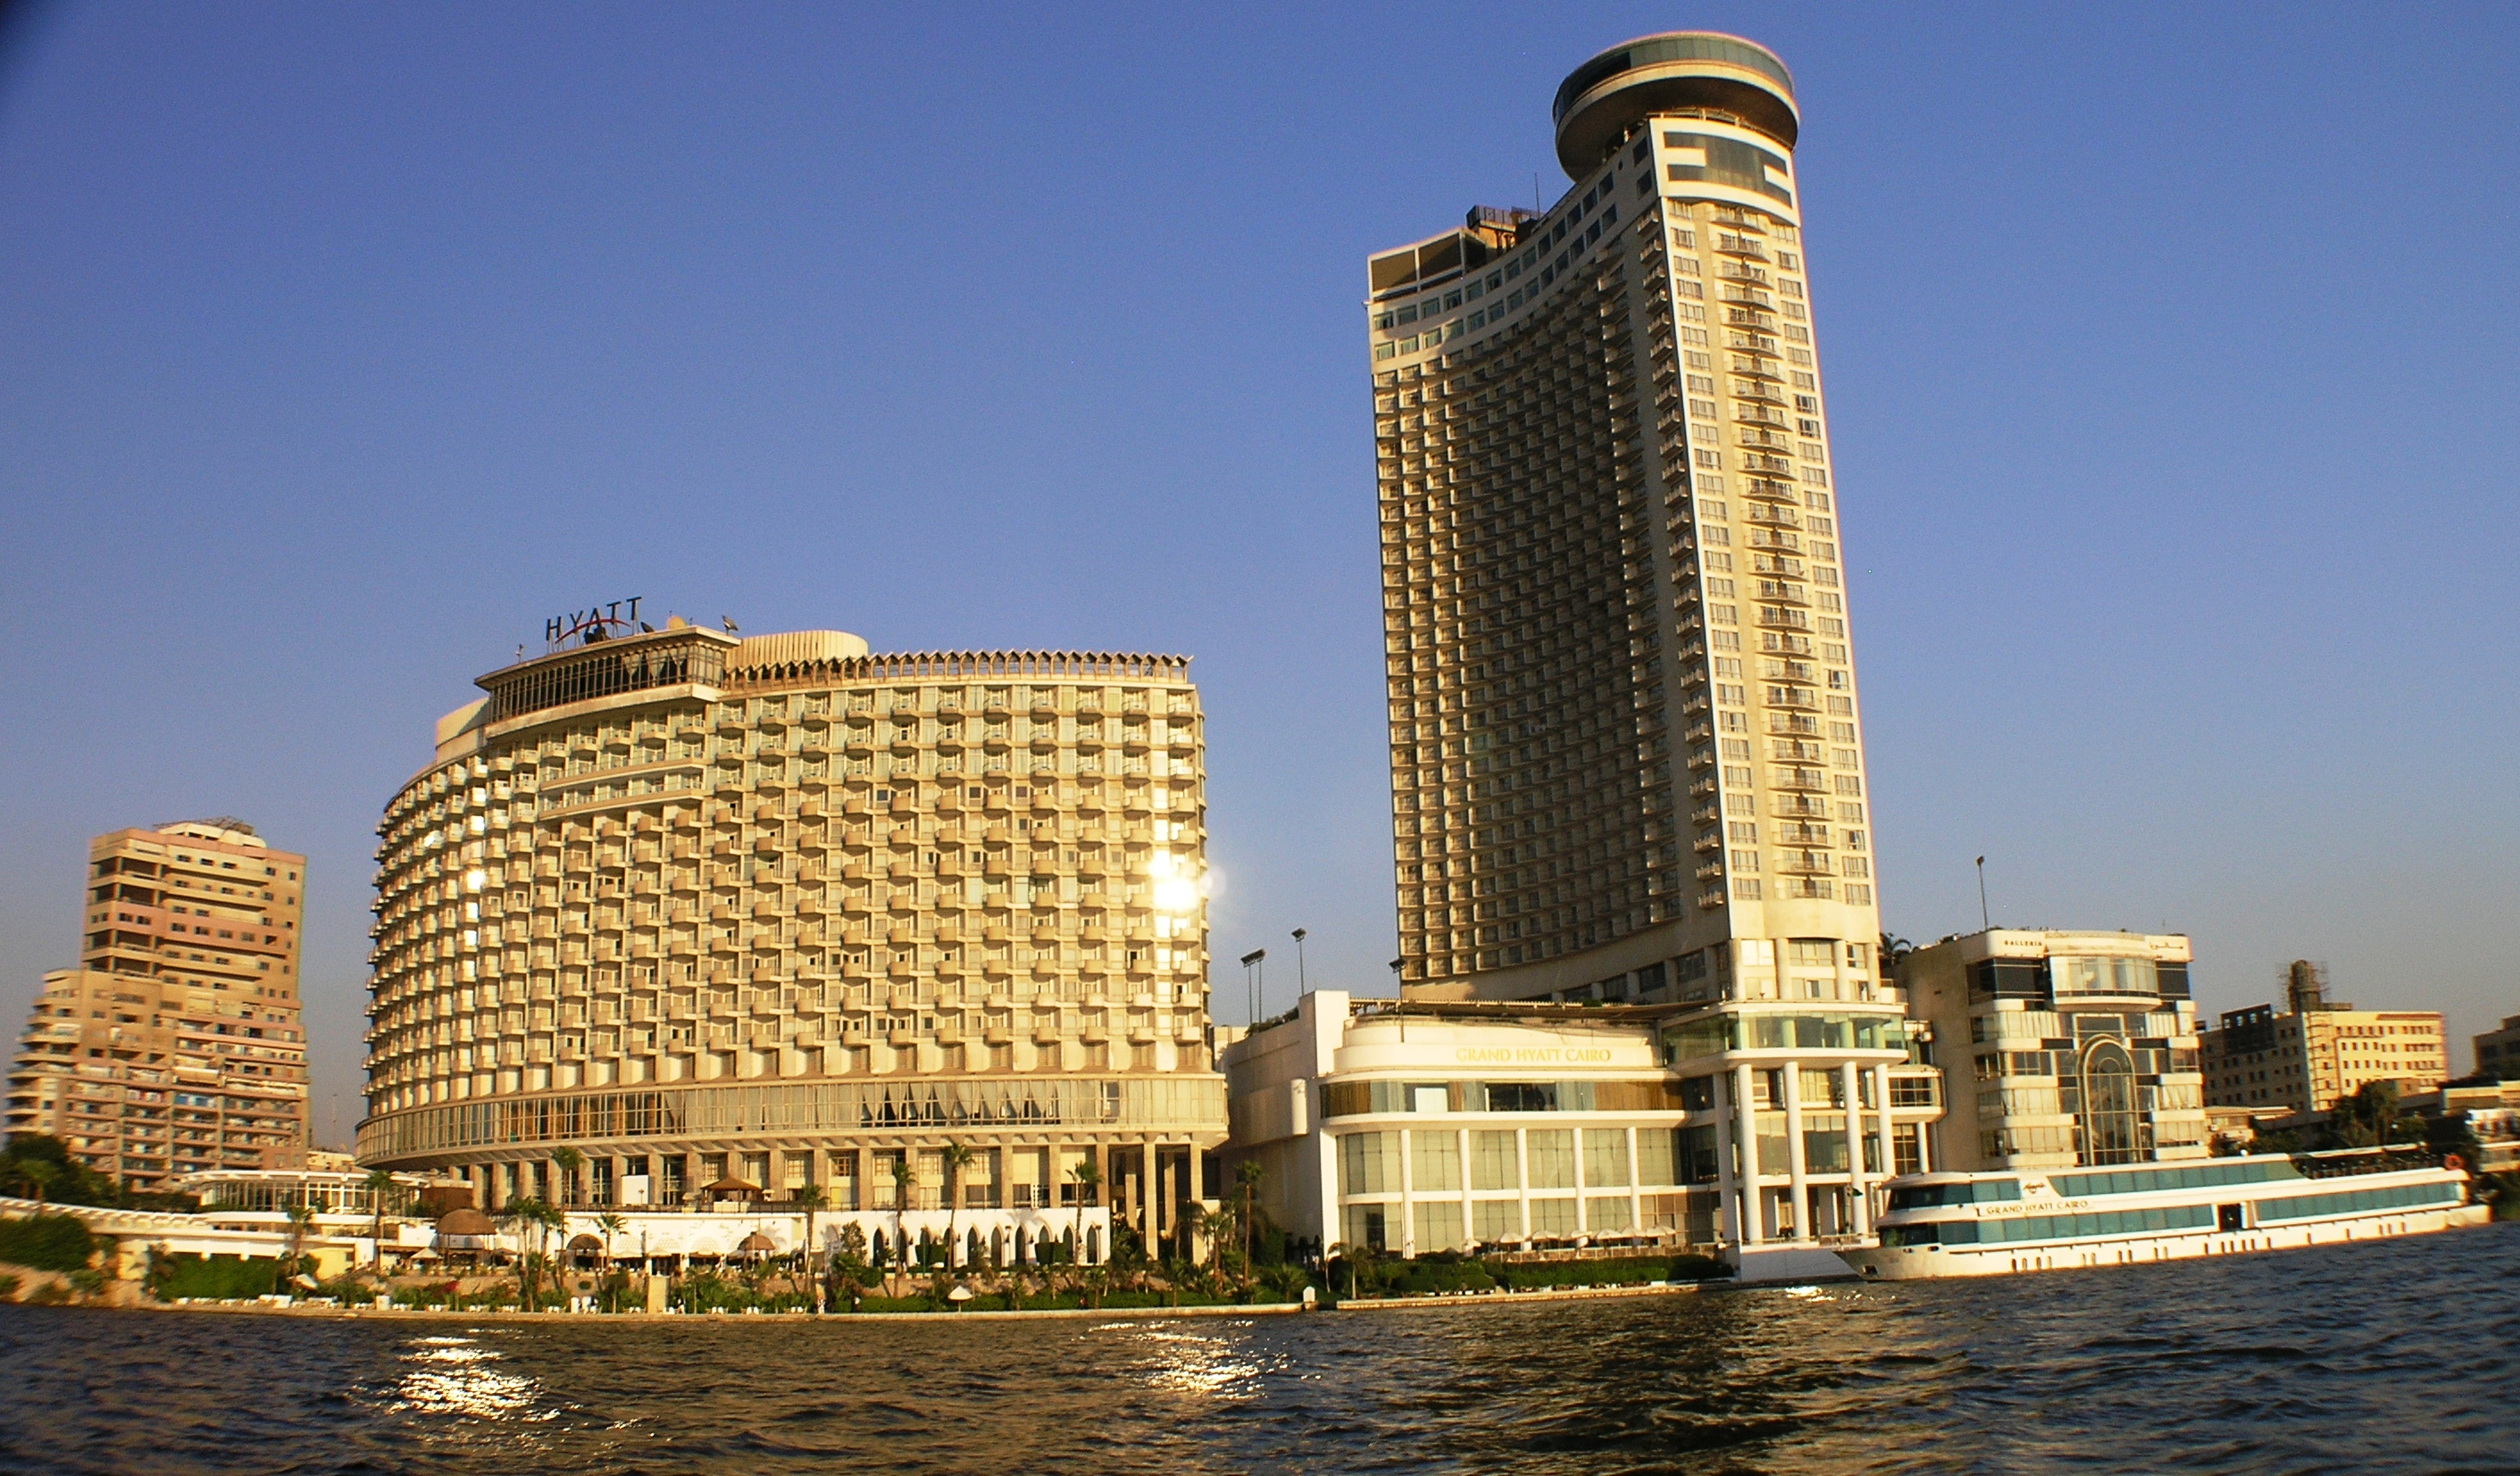 FileCairo Garden City Hyatt from the NileJPG Wikimedia Commons